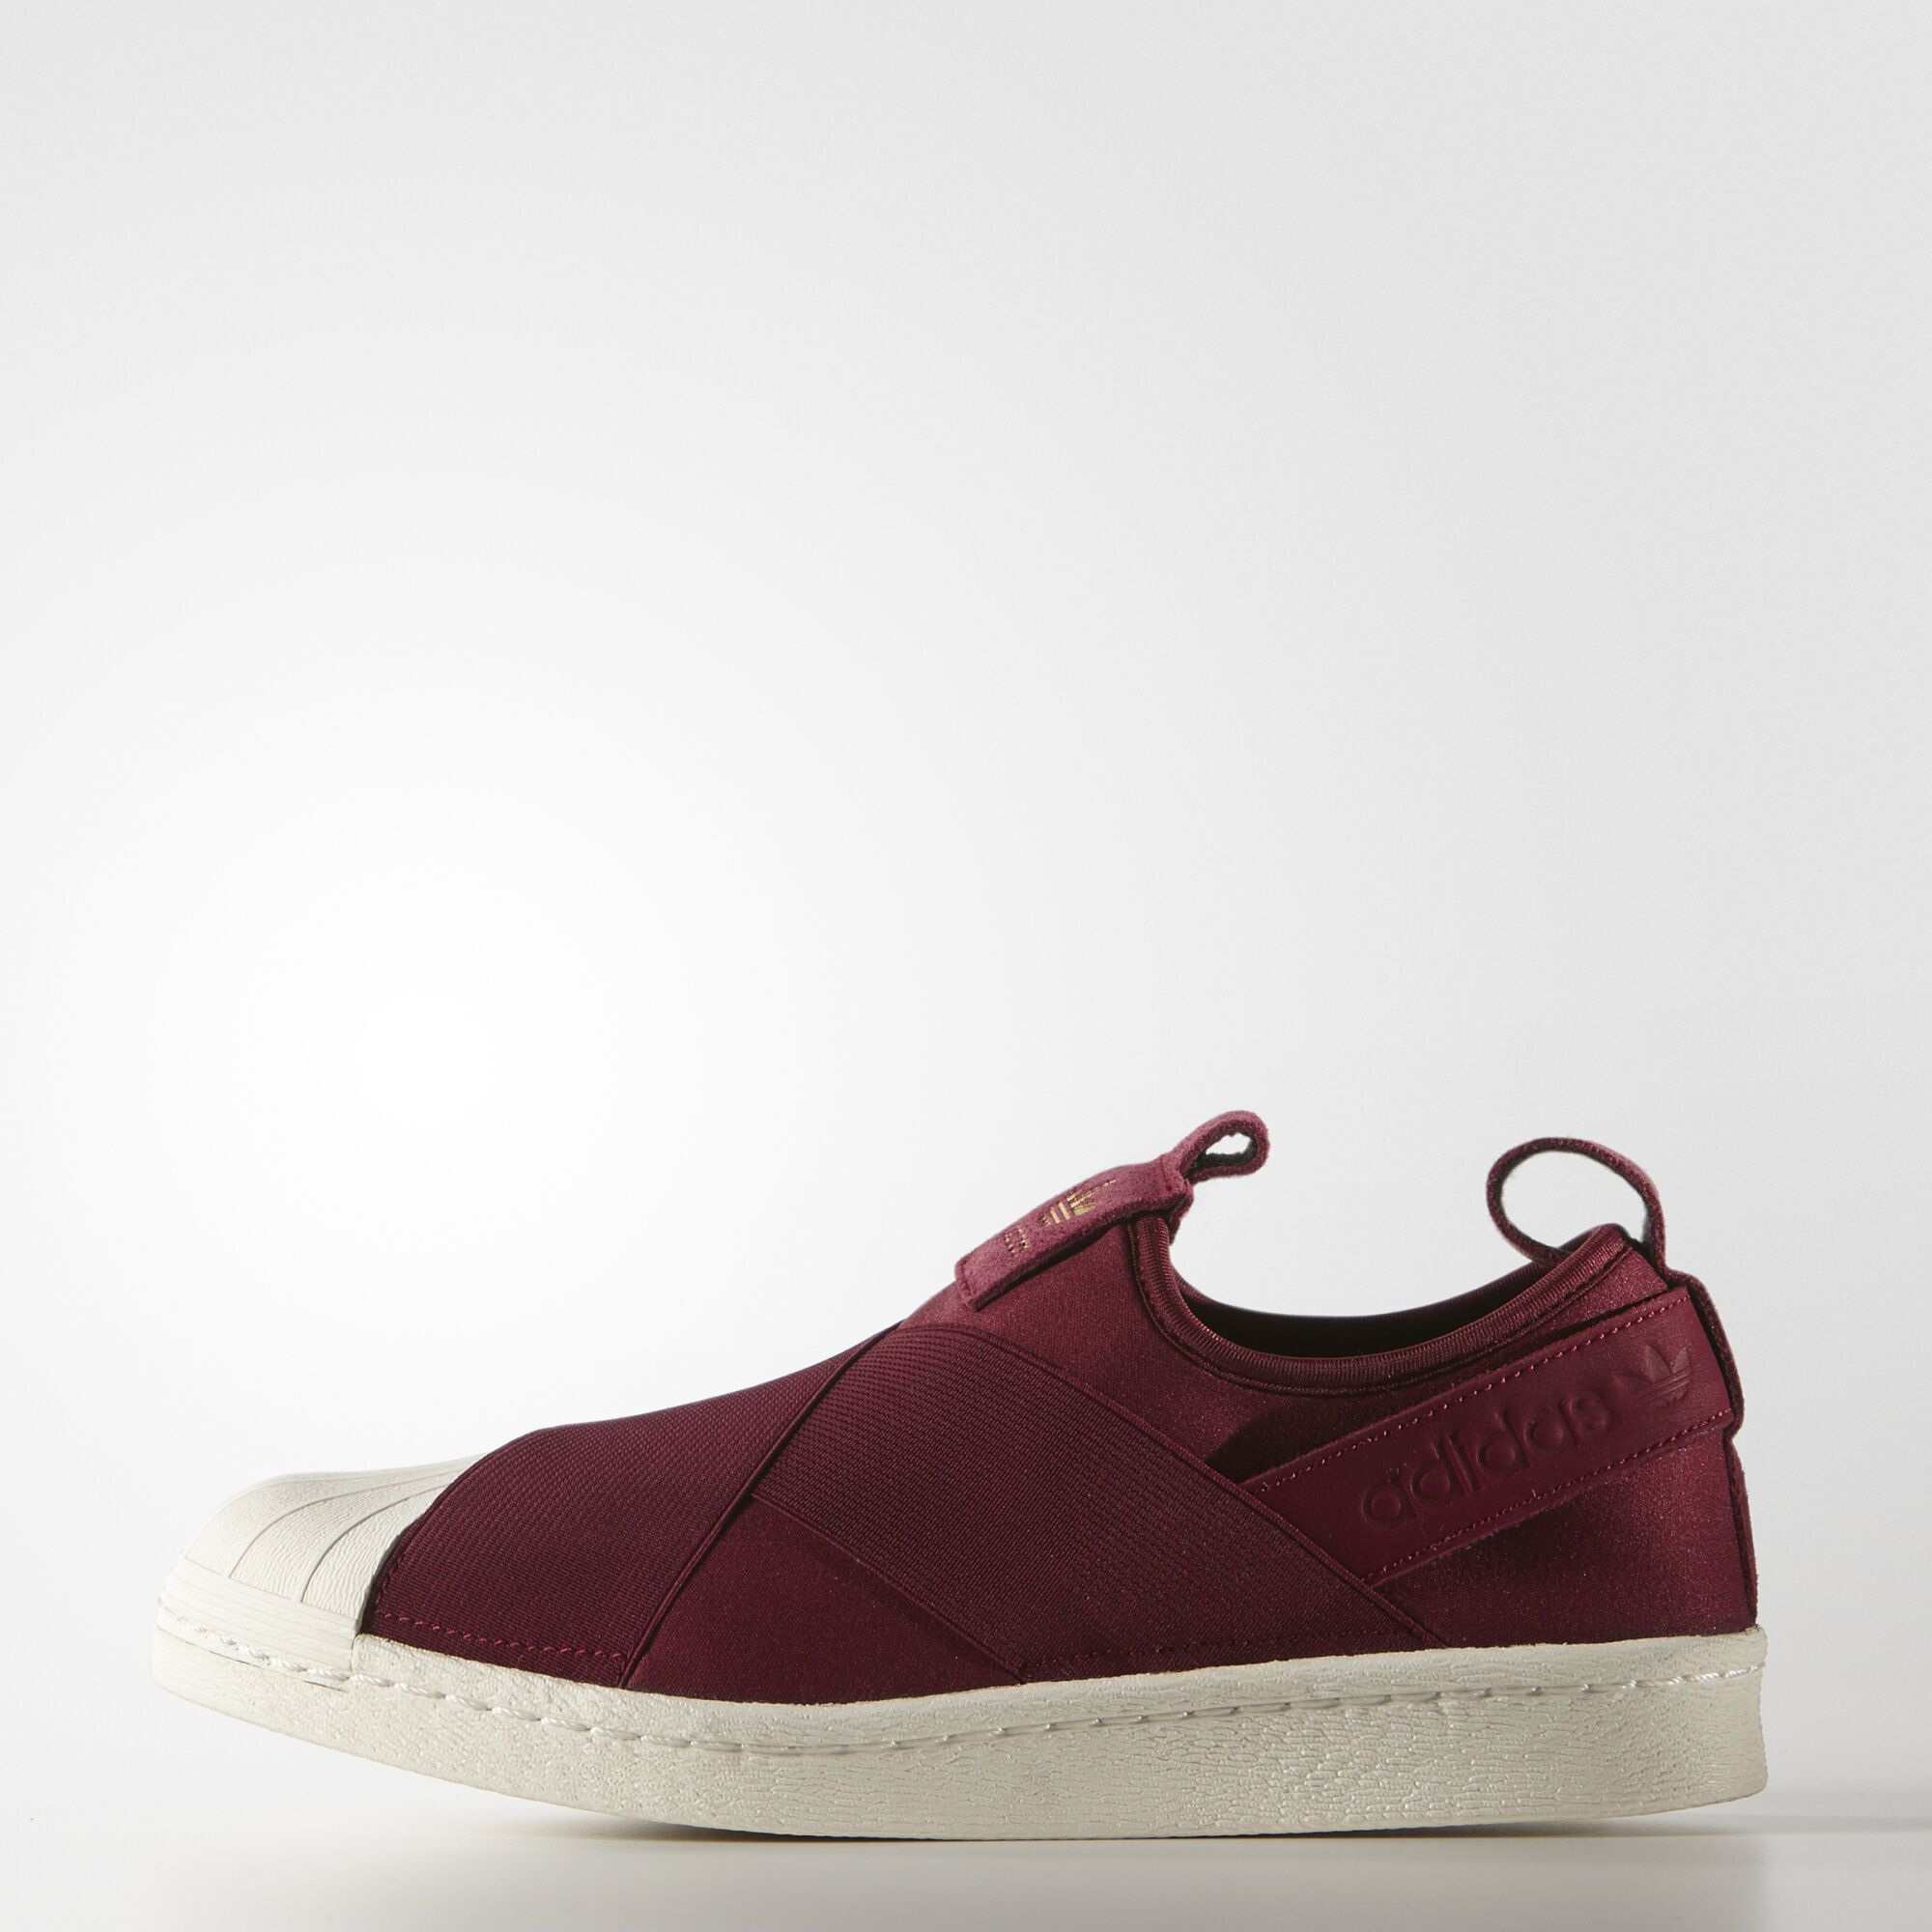 new concept 41b91 04819 buy adidas superstar shoes online